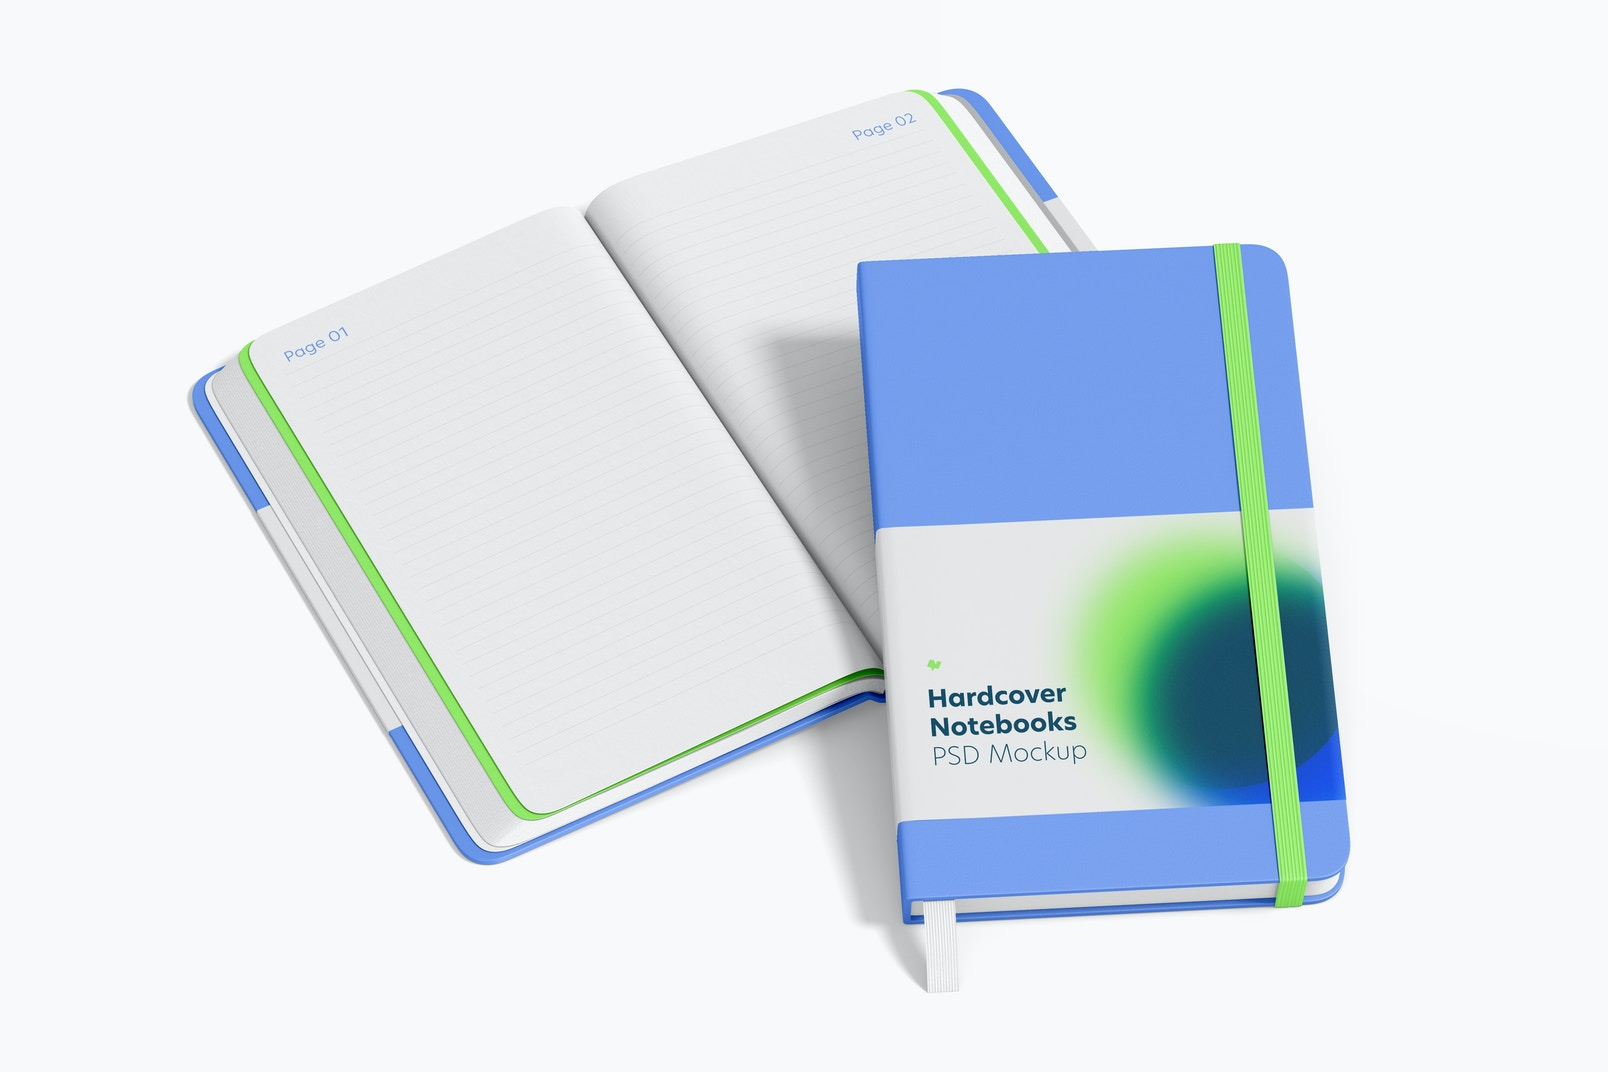 Hardcover Notebooks with Elastic Band Mockup, Opened and Closed